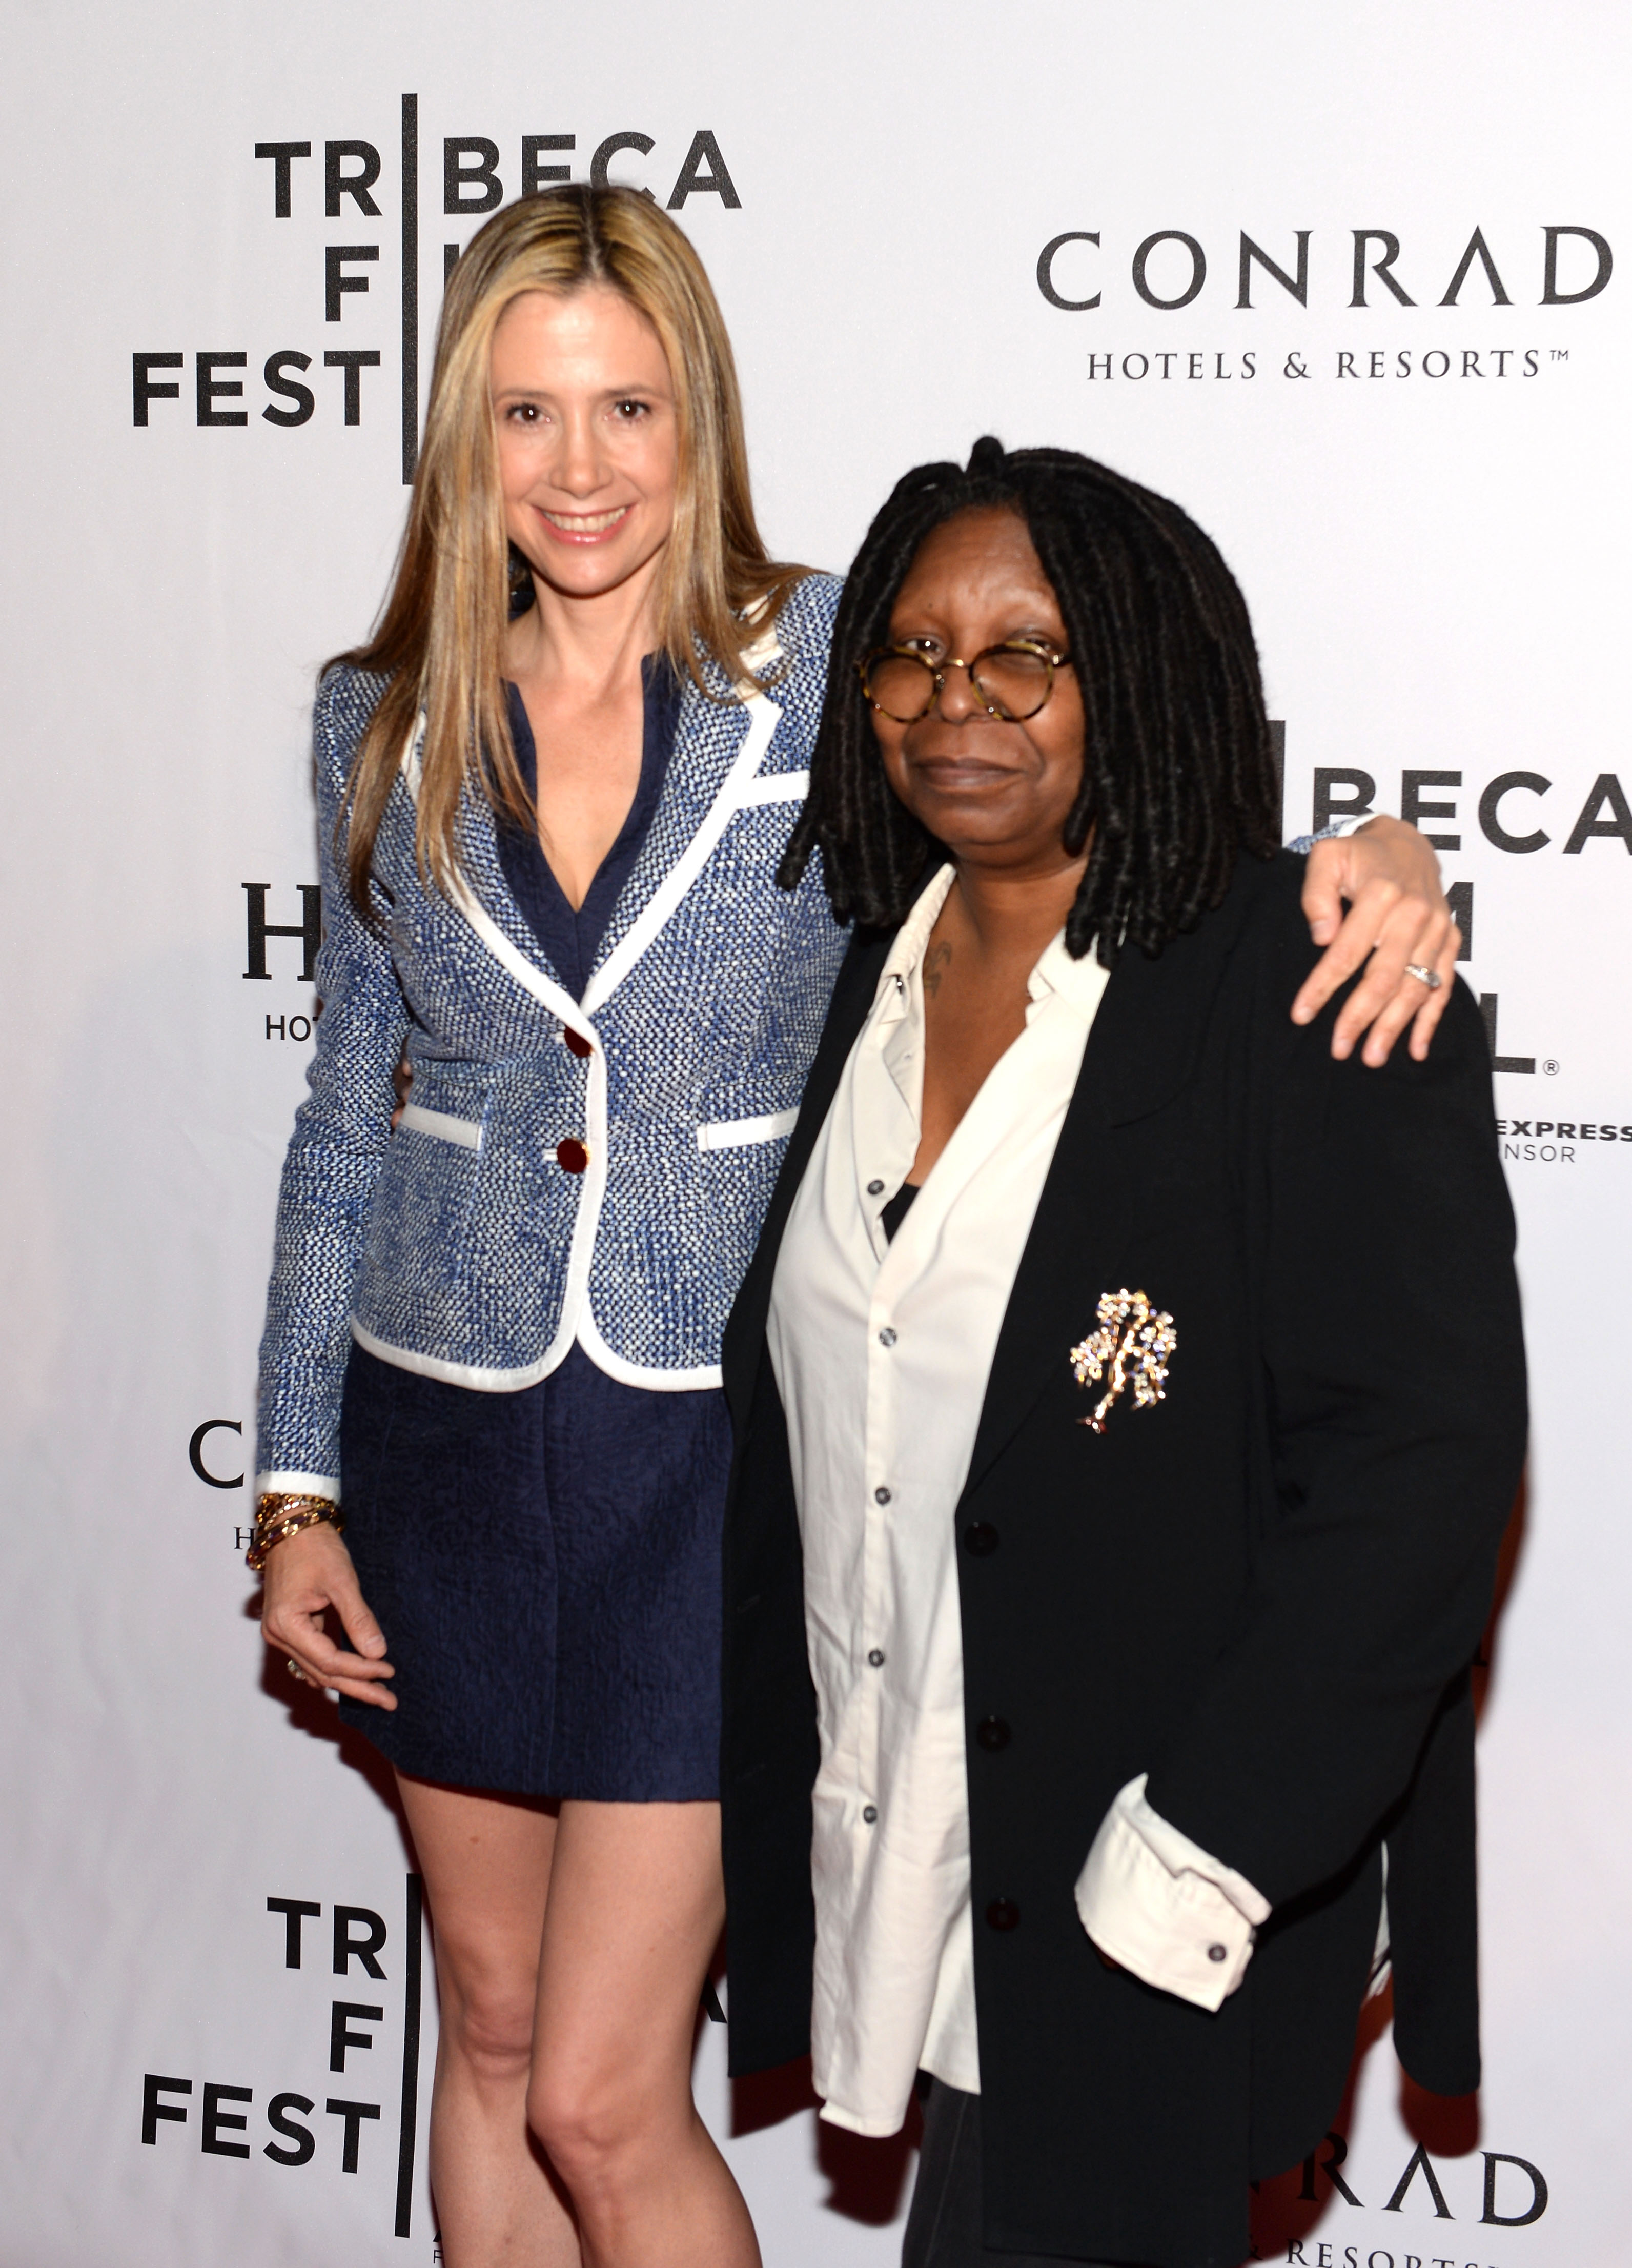 Whoopi Goldberg posed with Mira Sorvino on the red carpet at a Conrad Hotels event during the festival.